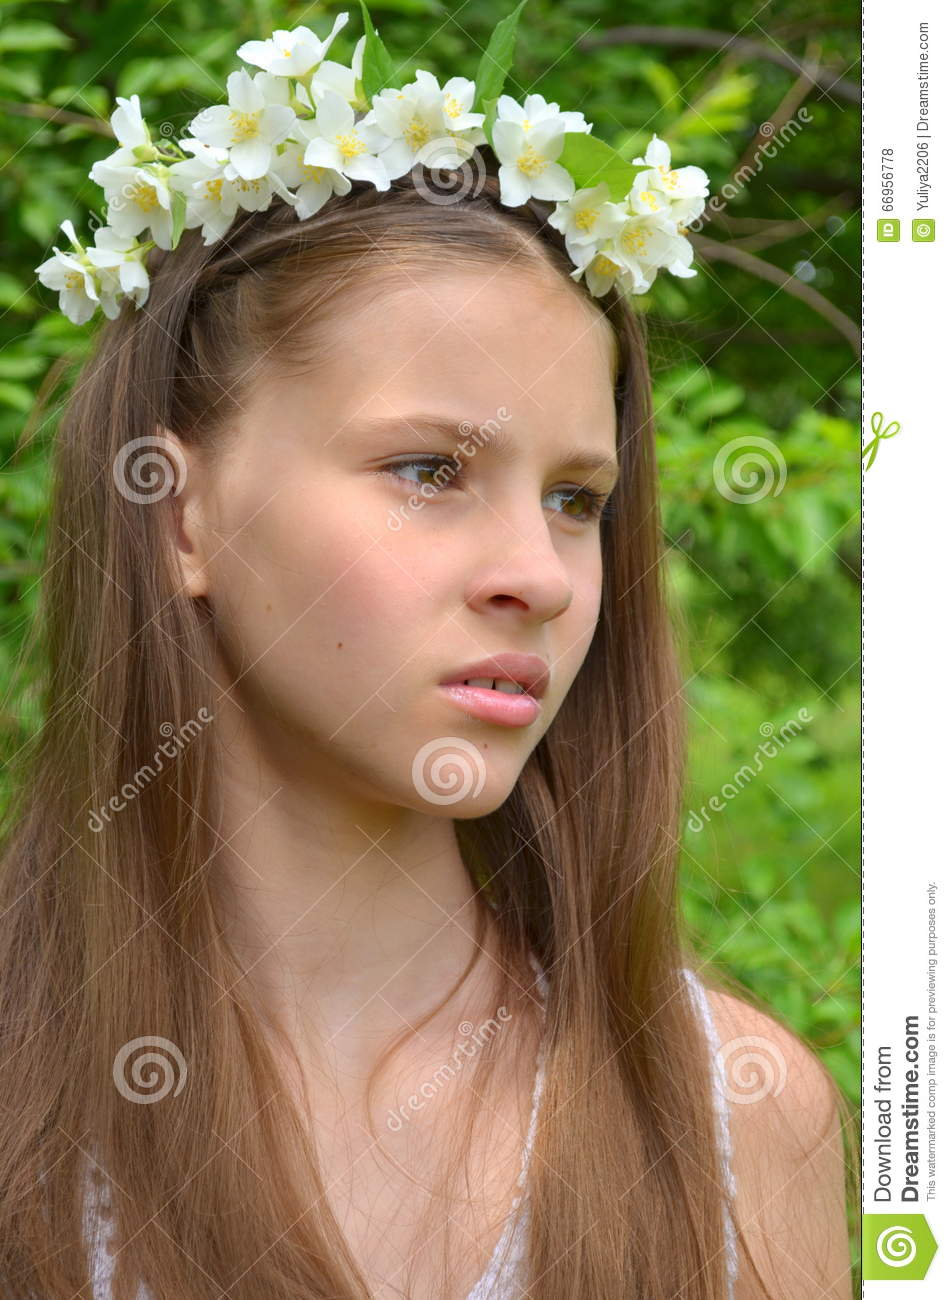 Girl with jasmine flowers stock photo image of braids 66956778 girl with a flower wreath on head with live jasmine flowers izmirmasajfo